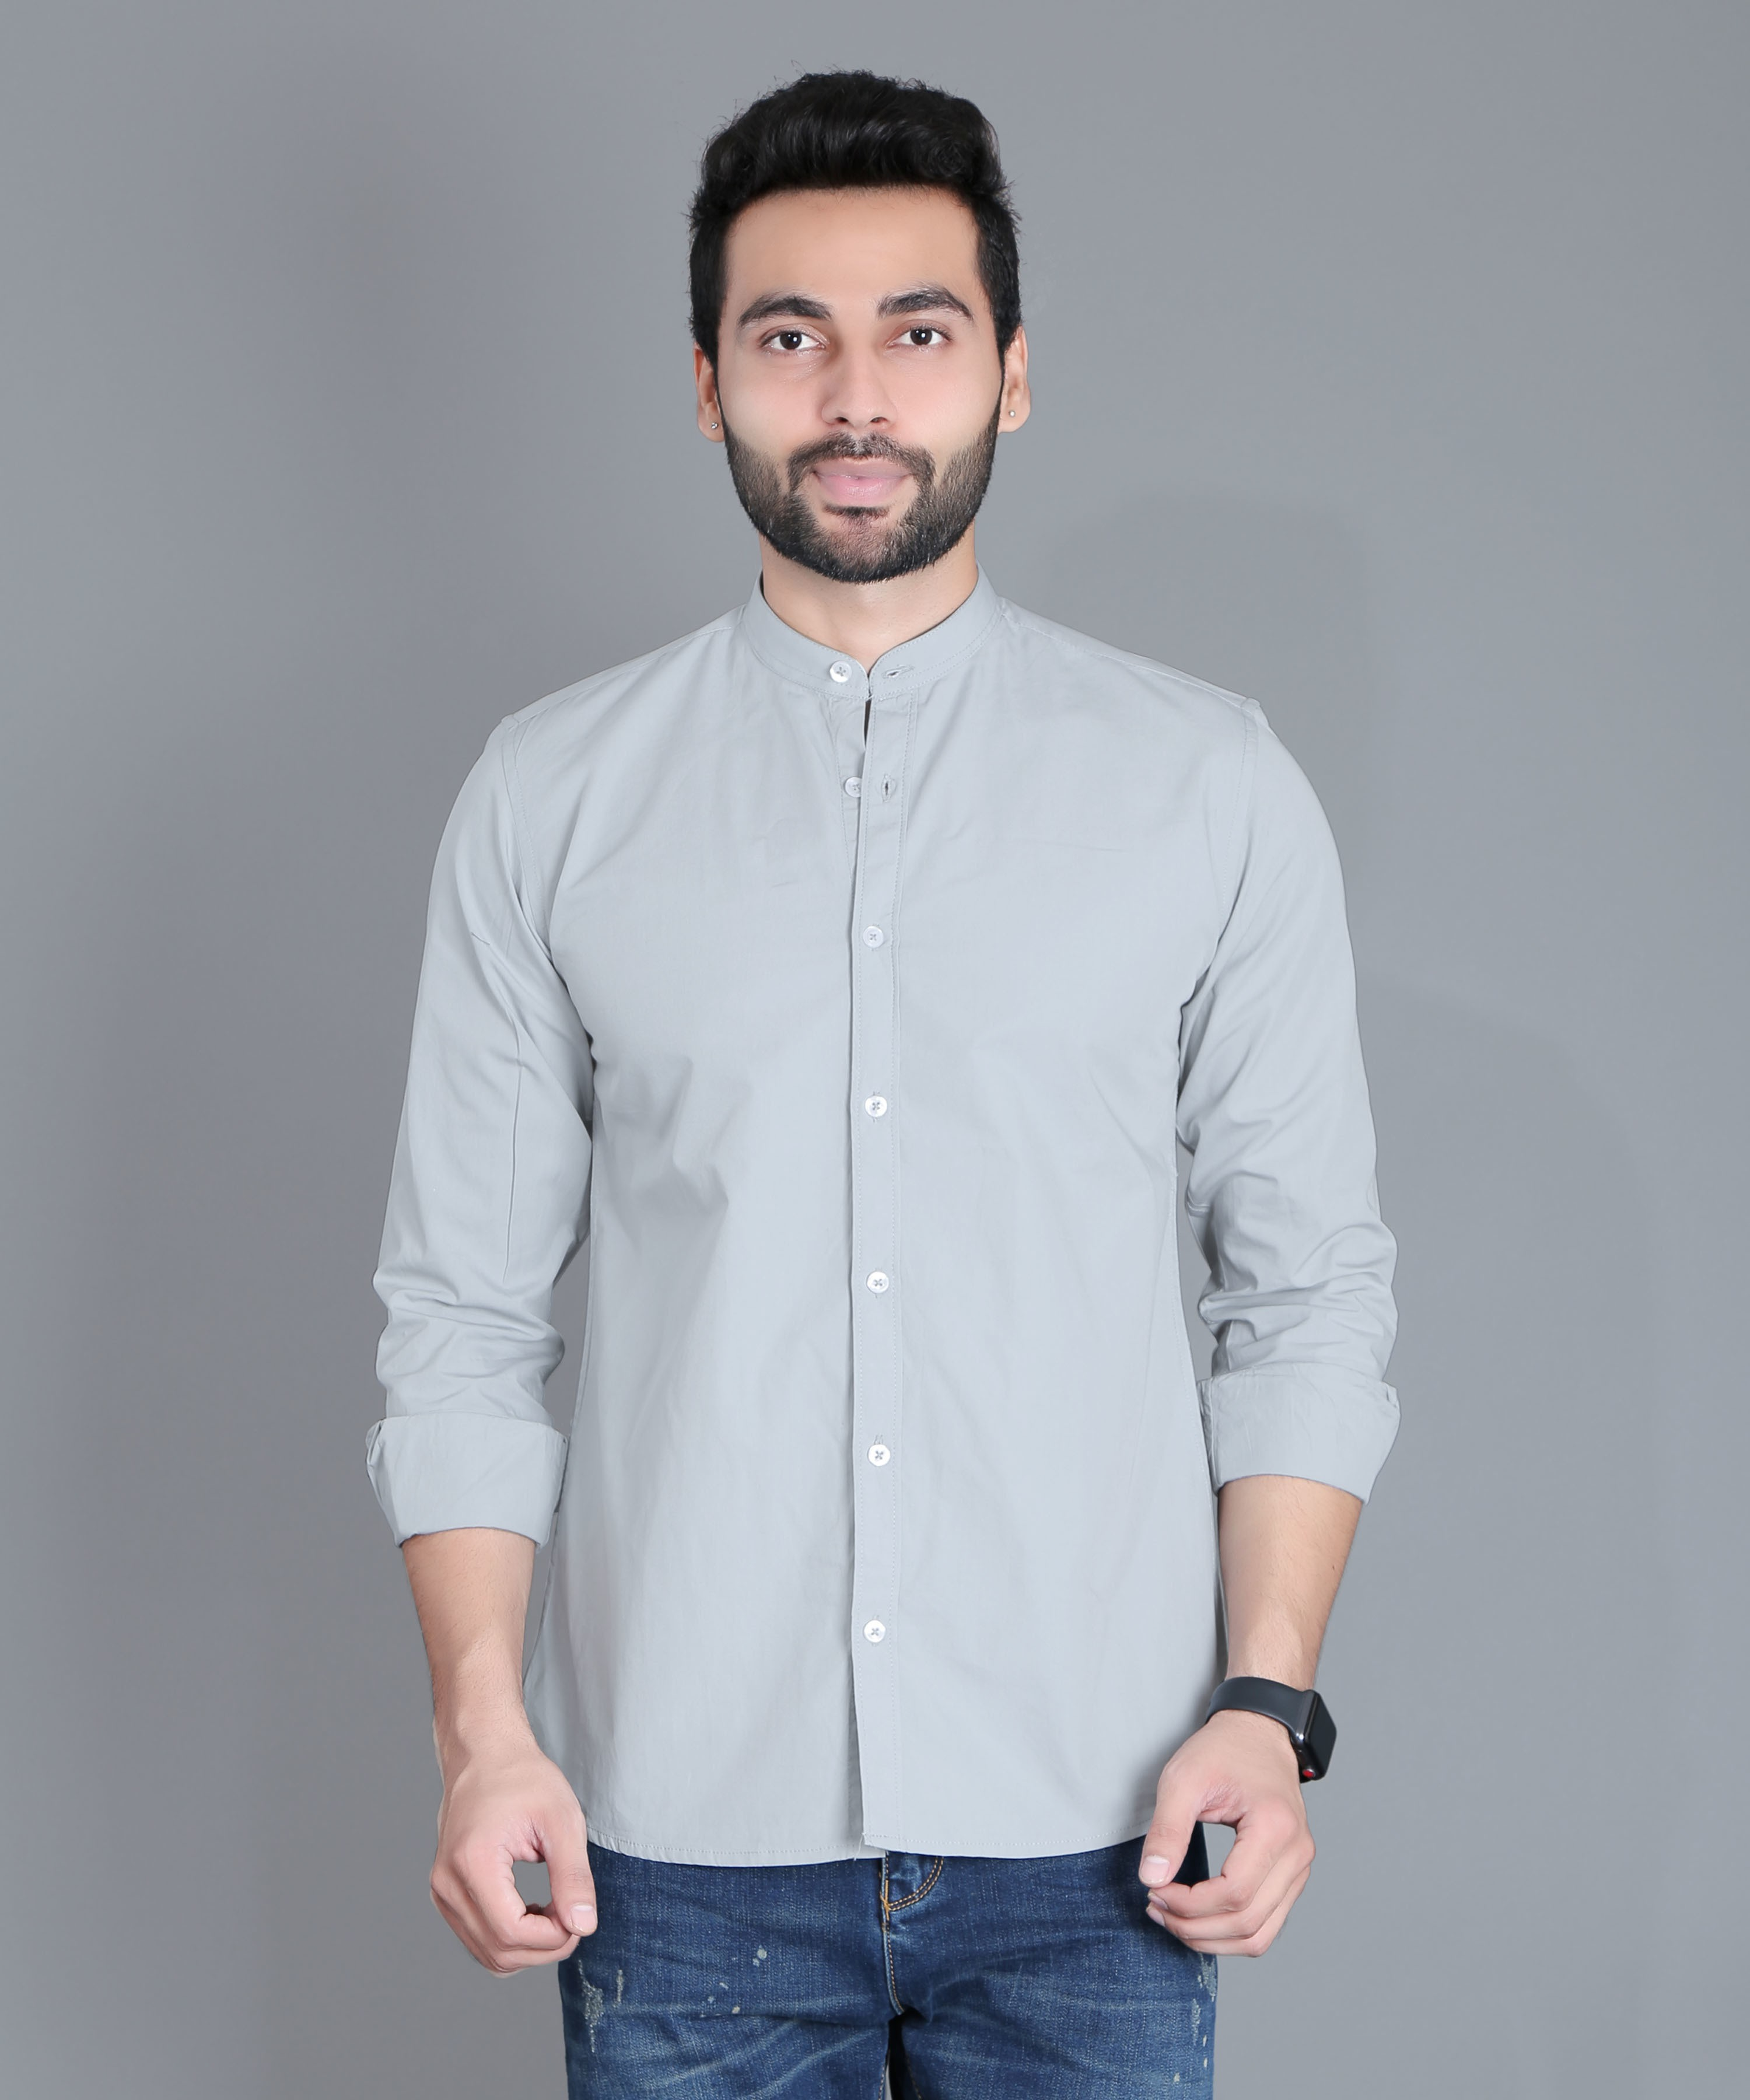 FIFTH ANFOLD Casual Mandrin Collar full Sleev/Long Sleev Cement Pure Cotton Plain Solid Men Shirt